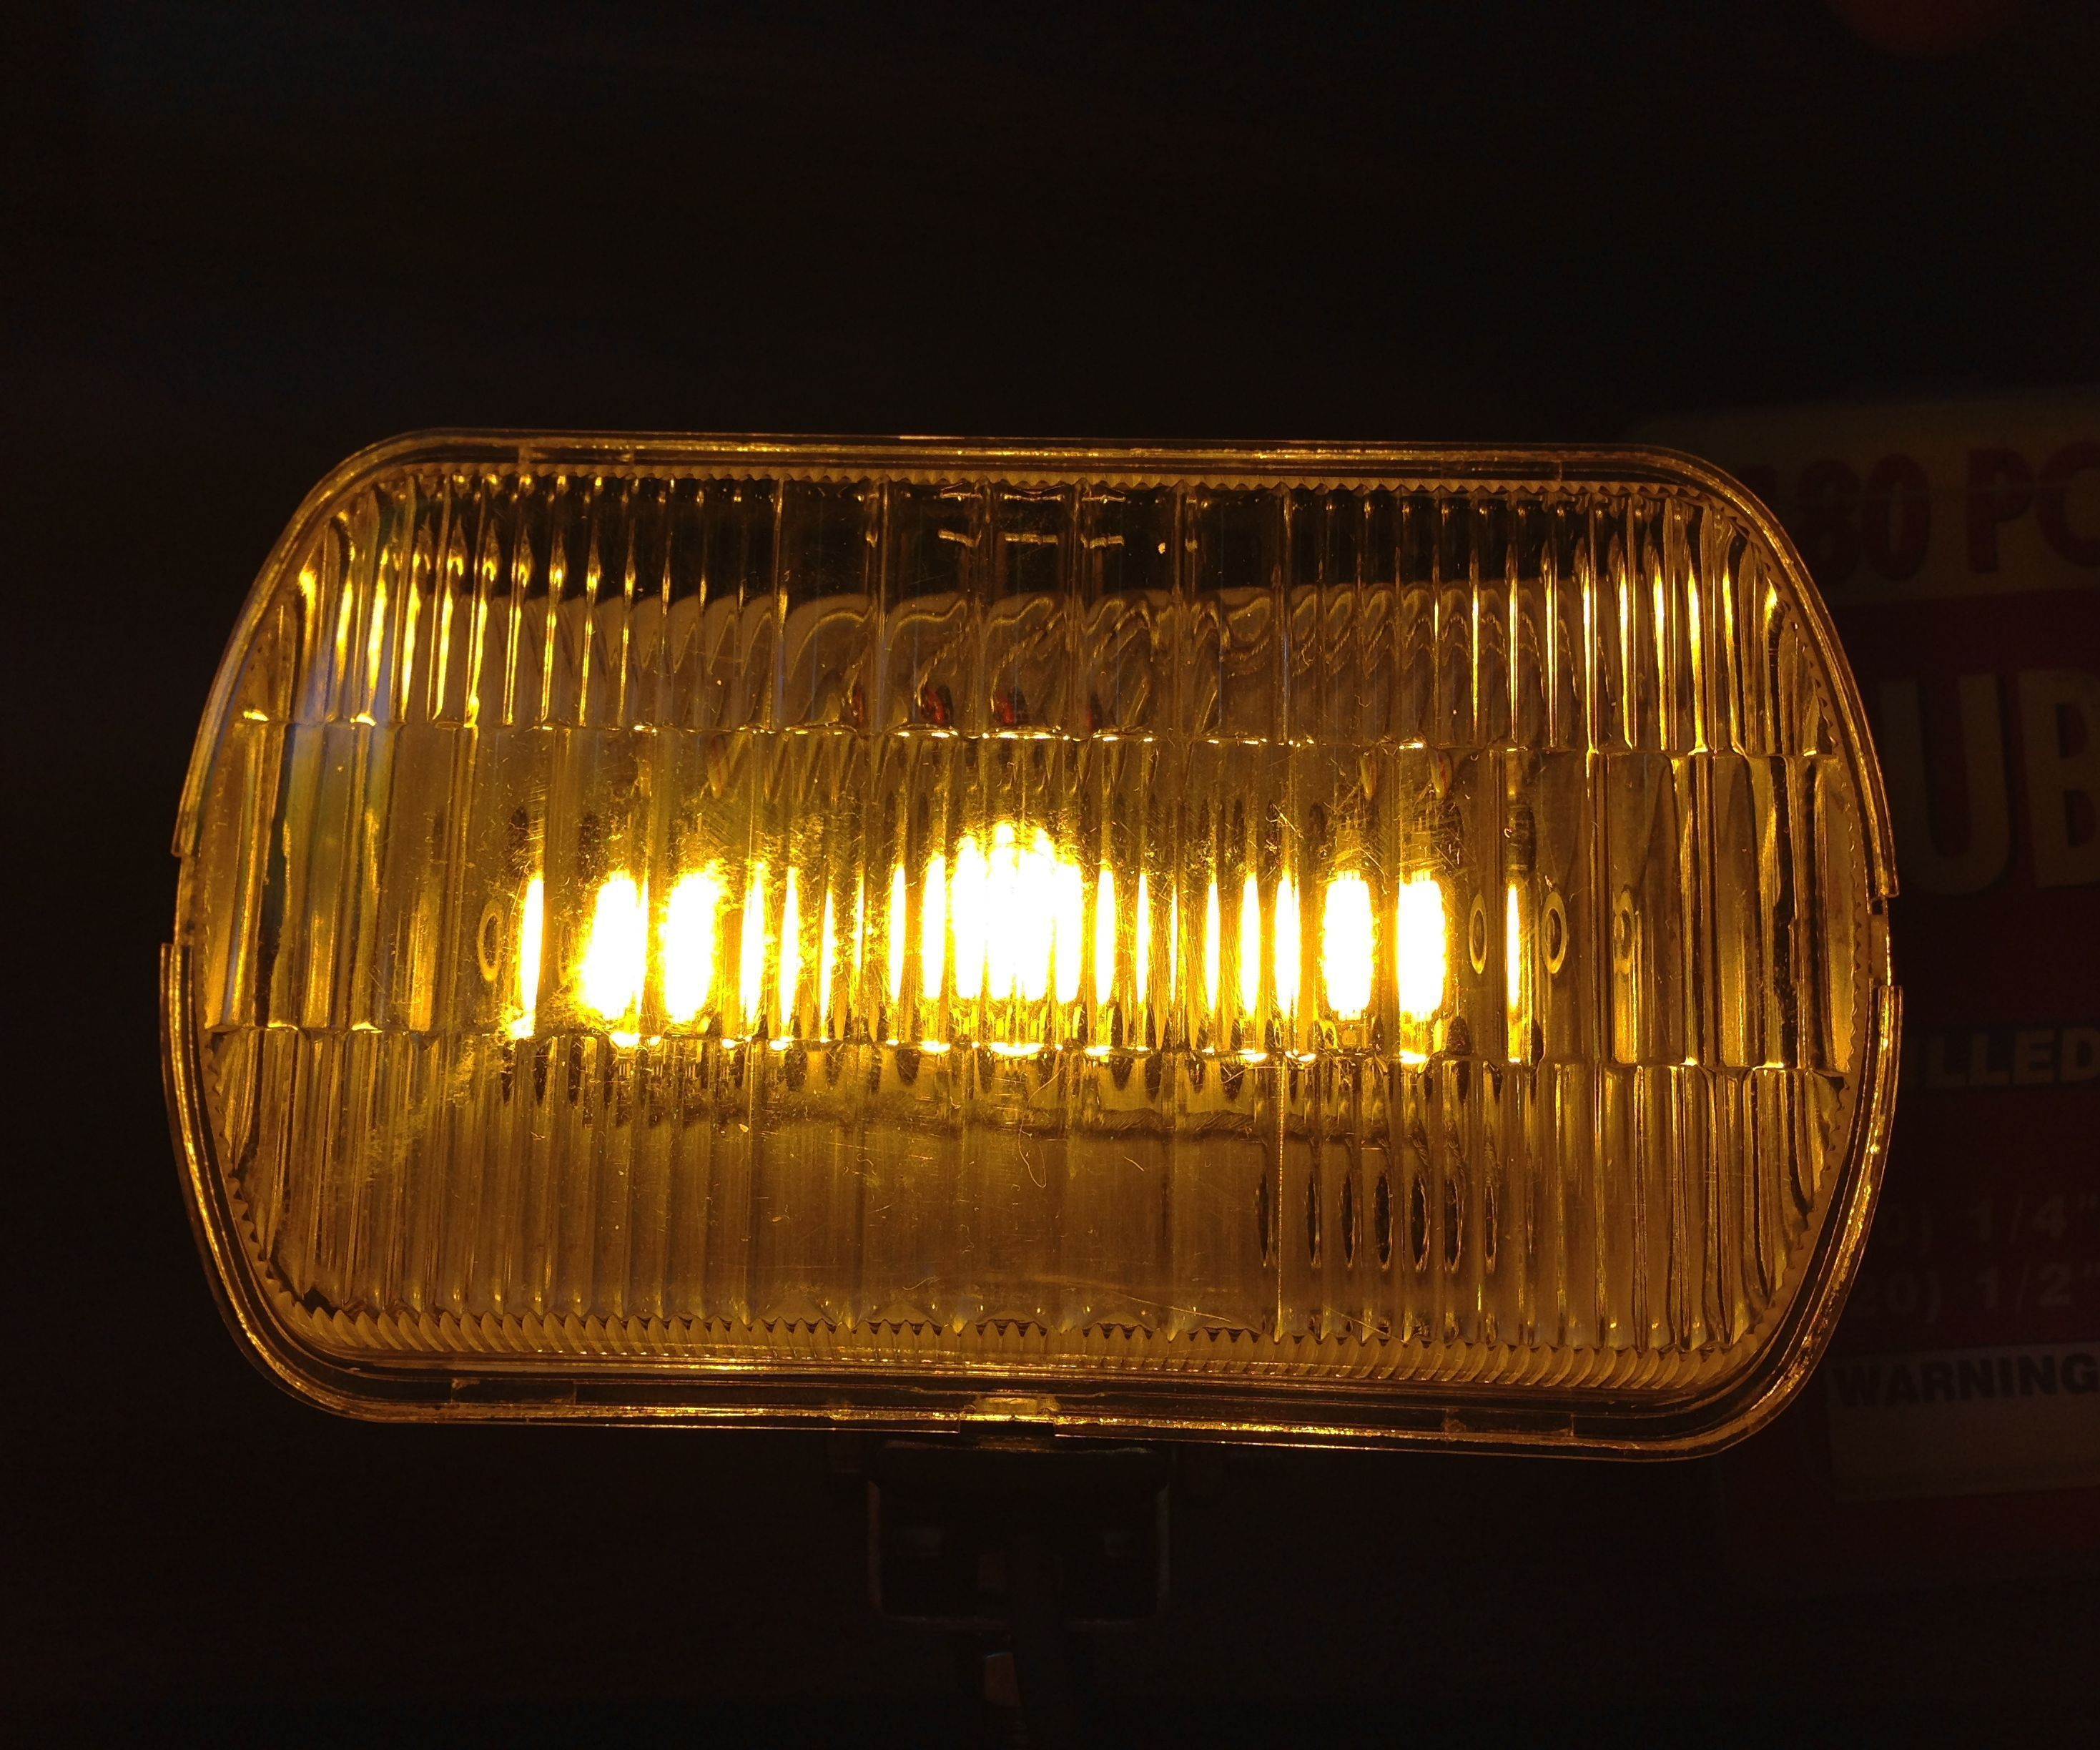 LED Strobe Lights for Towing Plowing Etc